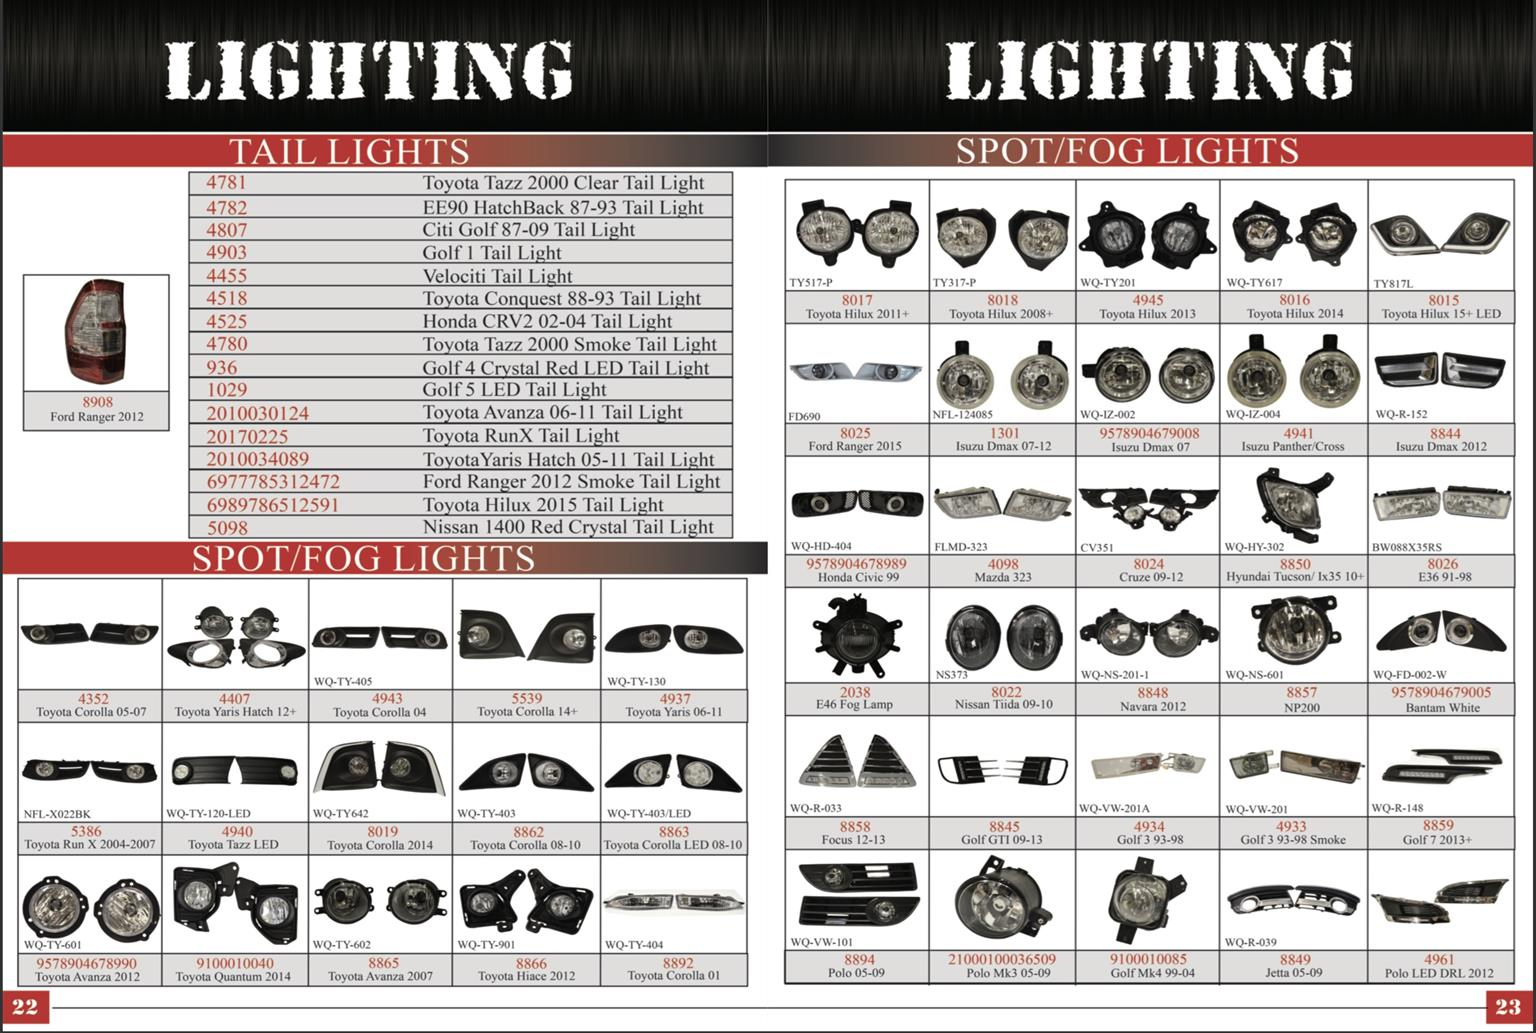 LED Lights and other Auto Styling available at warehouse prices